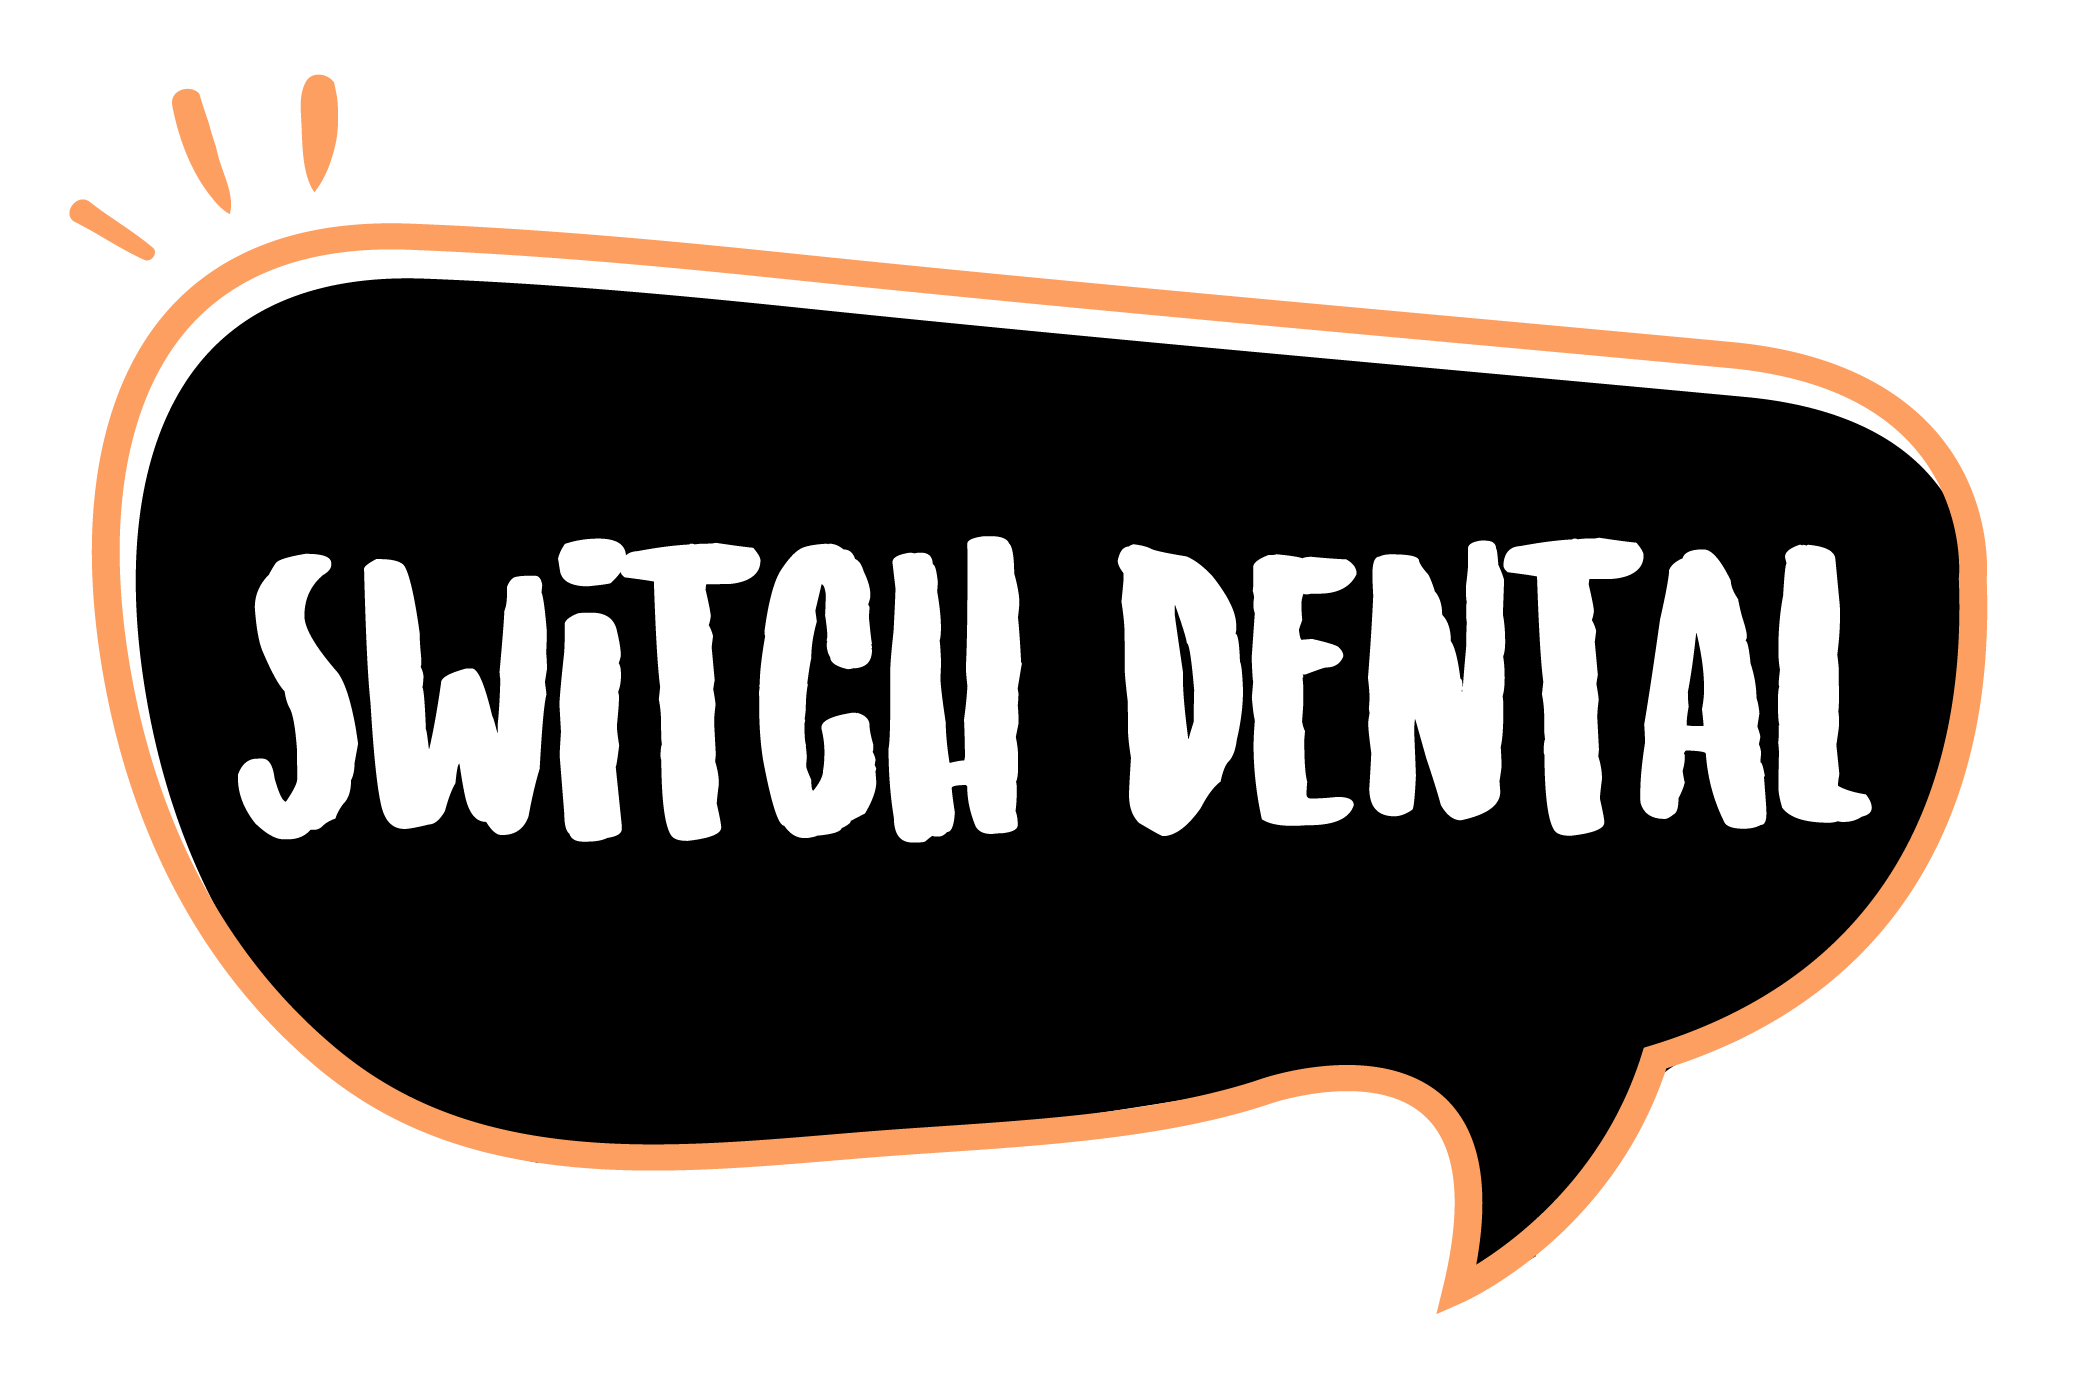 Switch Dental